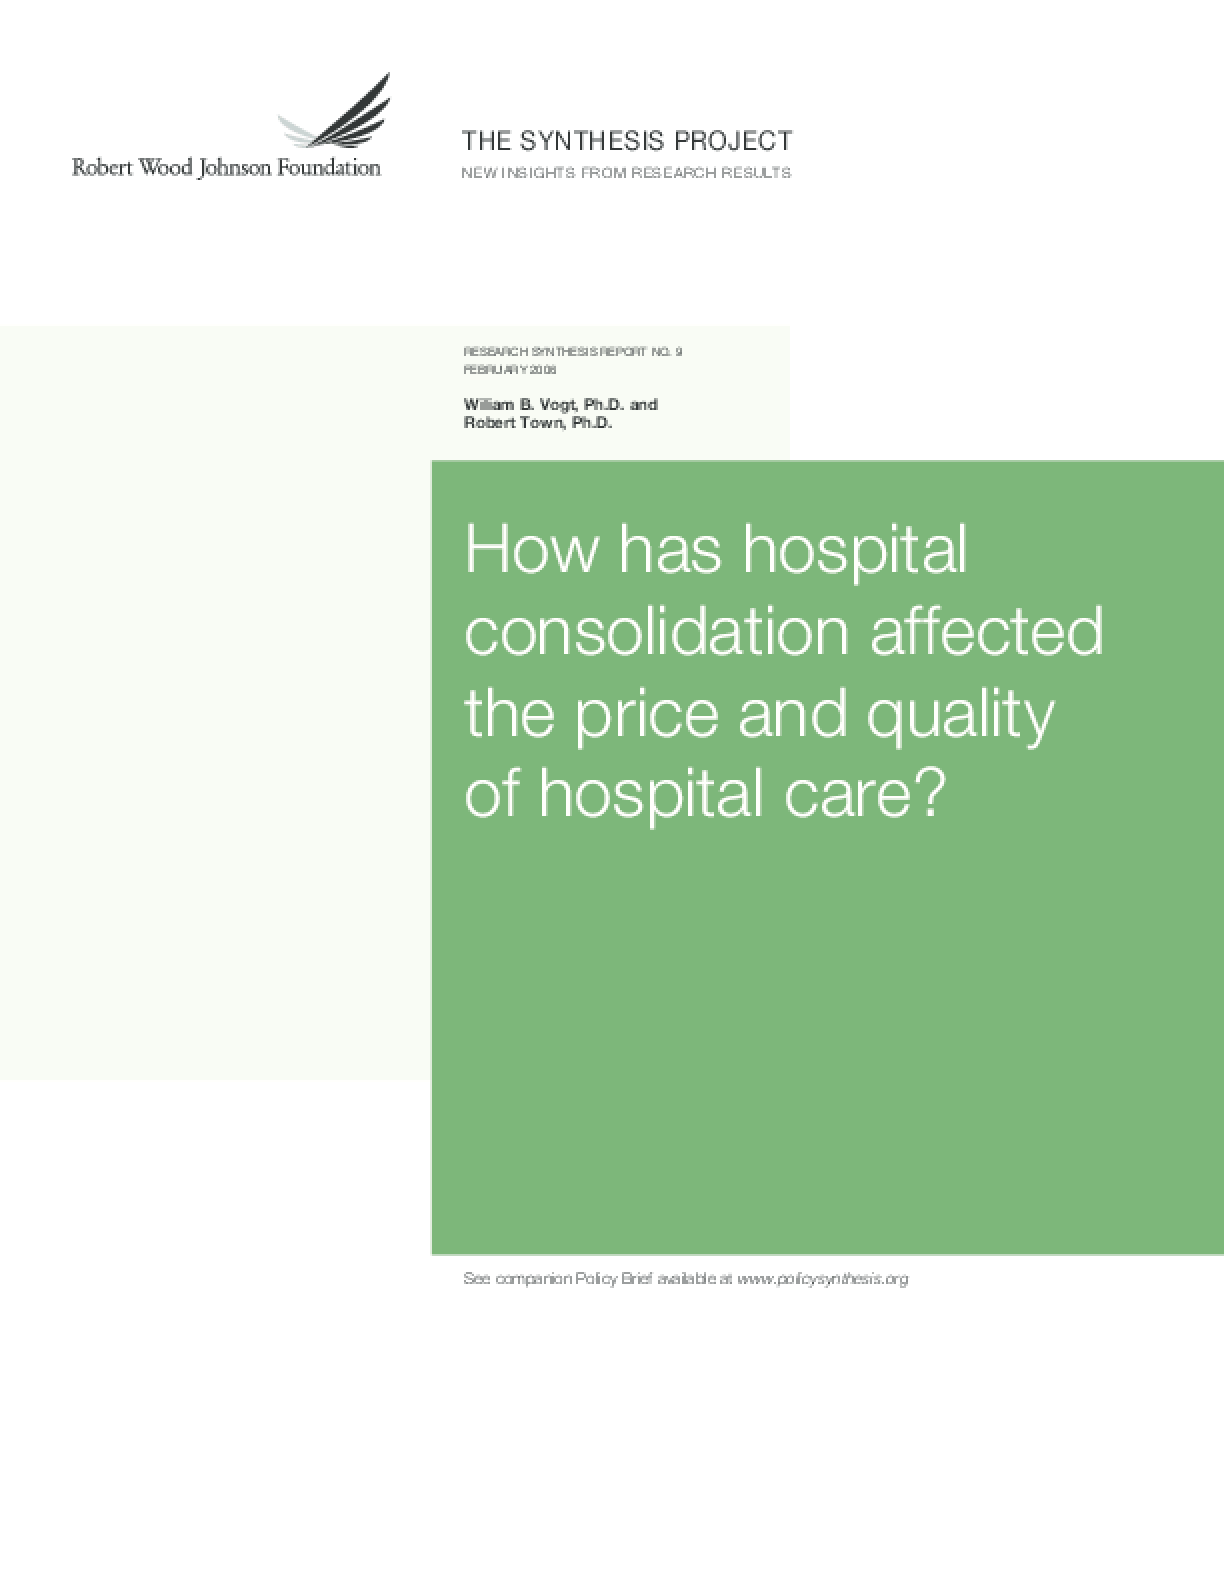 How Has Hospital Consolidation Affected the Price and Quality of Hospital Care?